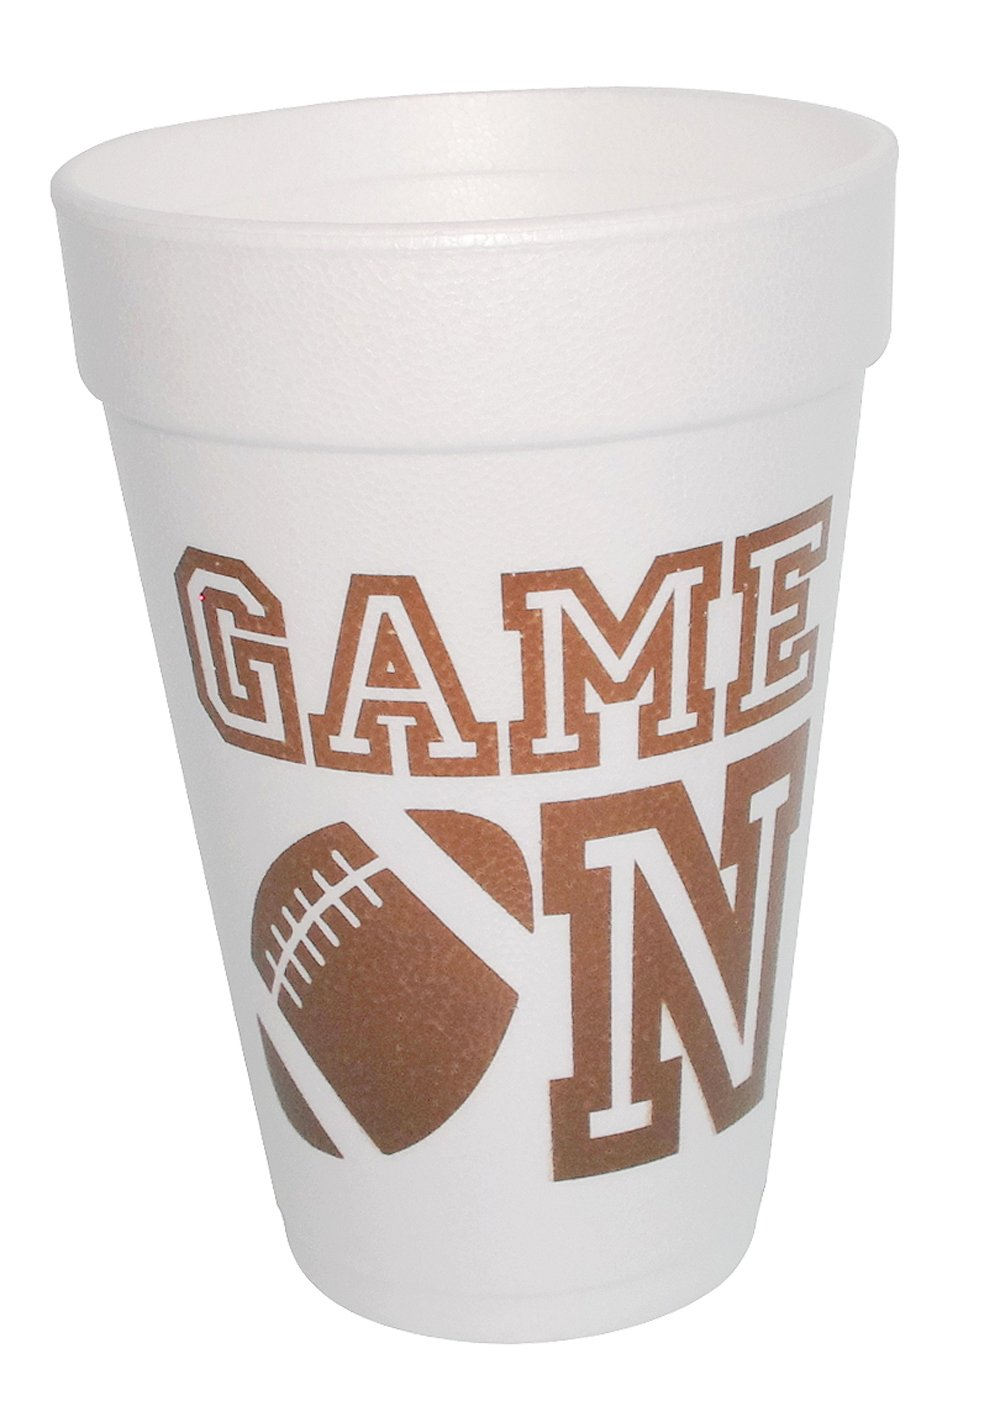 Game On Football Styrofoam Cups 10 (16 Oz.) Pack - White with Chocolate Lettering Front & Back Printed